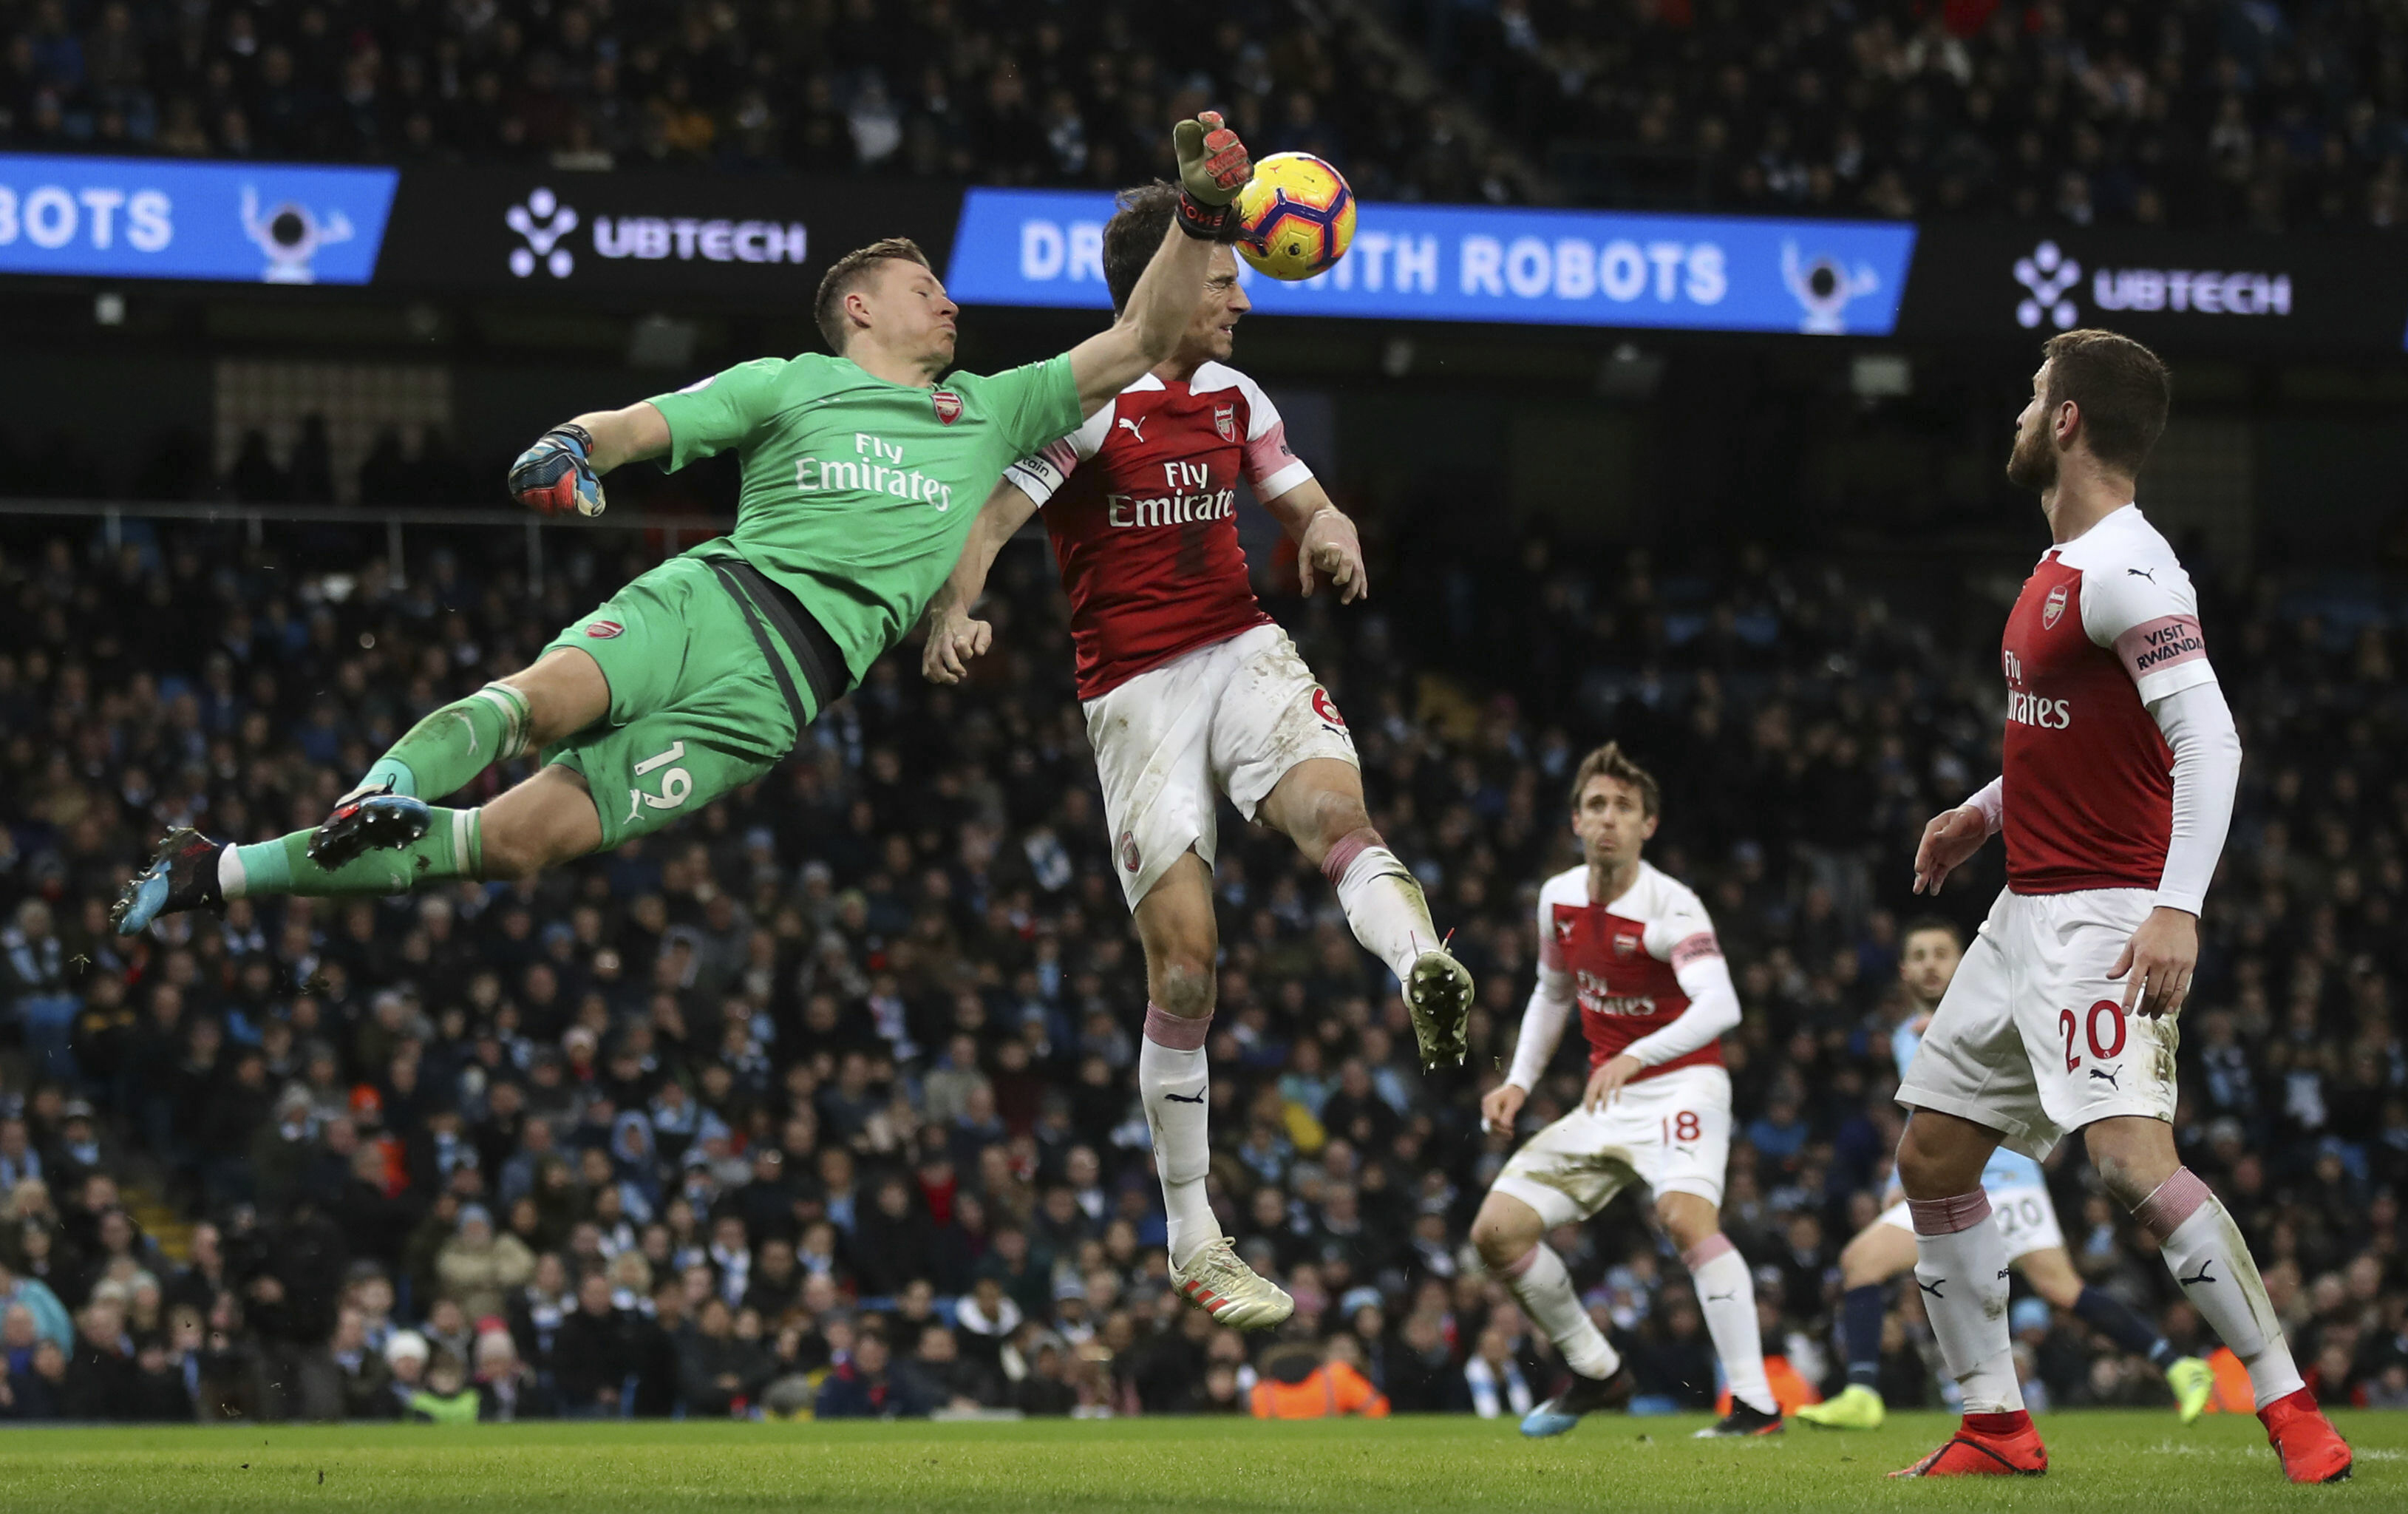 Aguero hat trick leads Man City to 3-1 victory over Arsenal